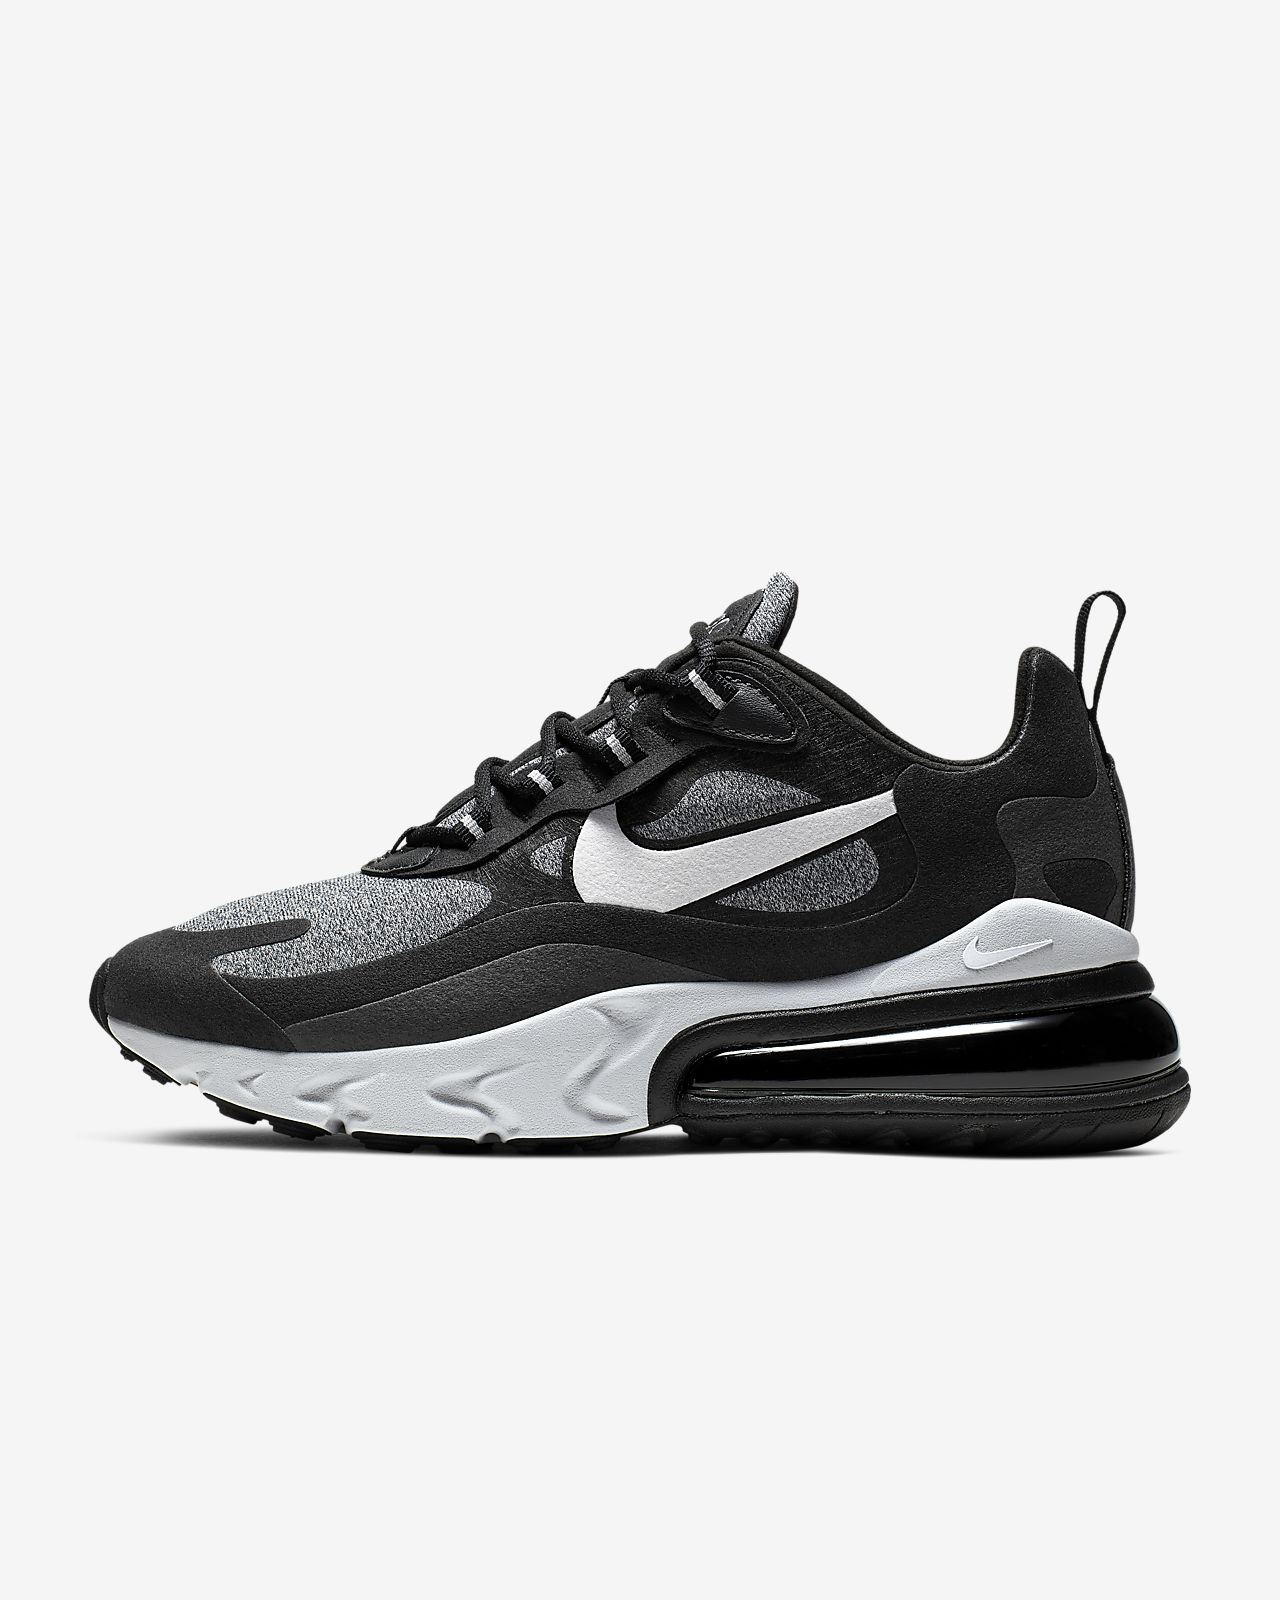 Nike Air Max 270 React sko til kvinder (Optical)